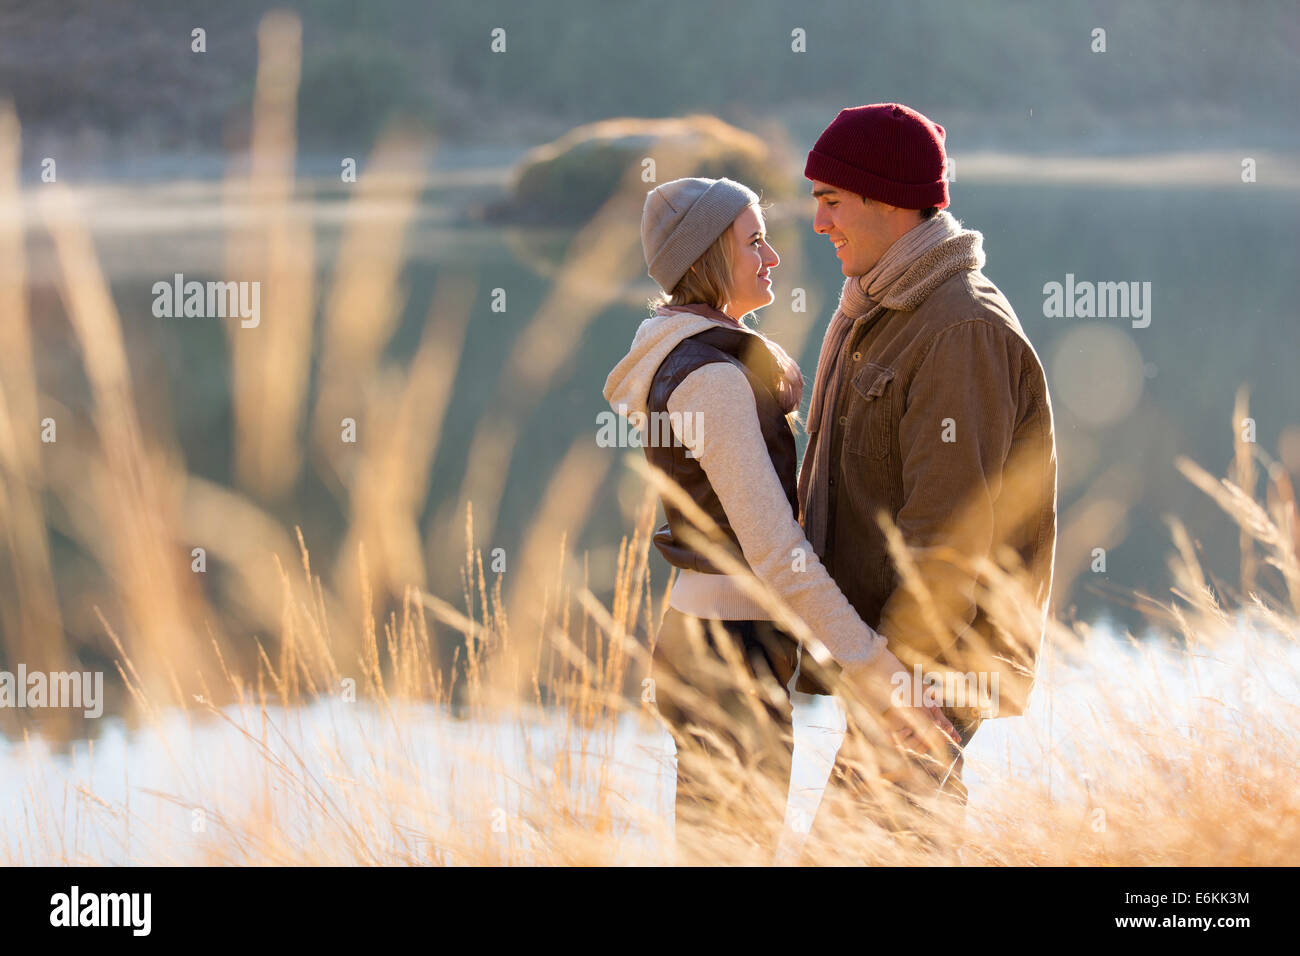 romantic couple flirting near lake - Stock Image